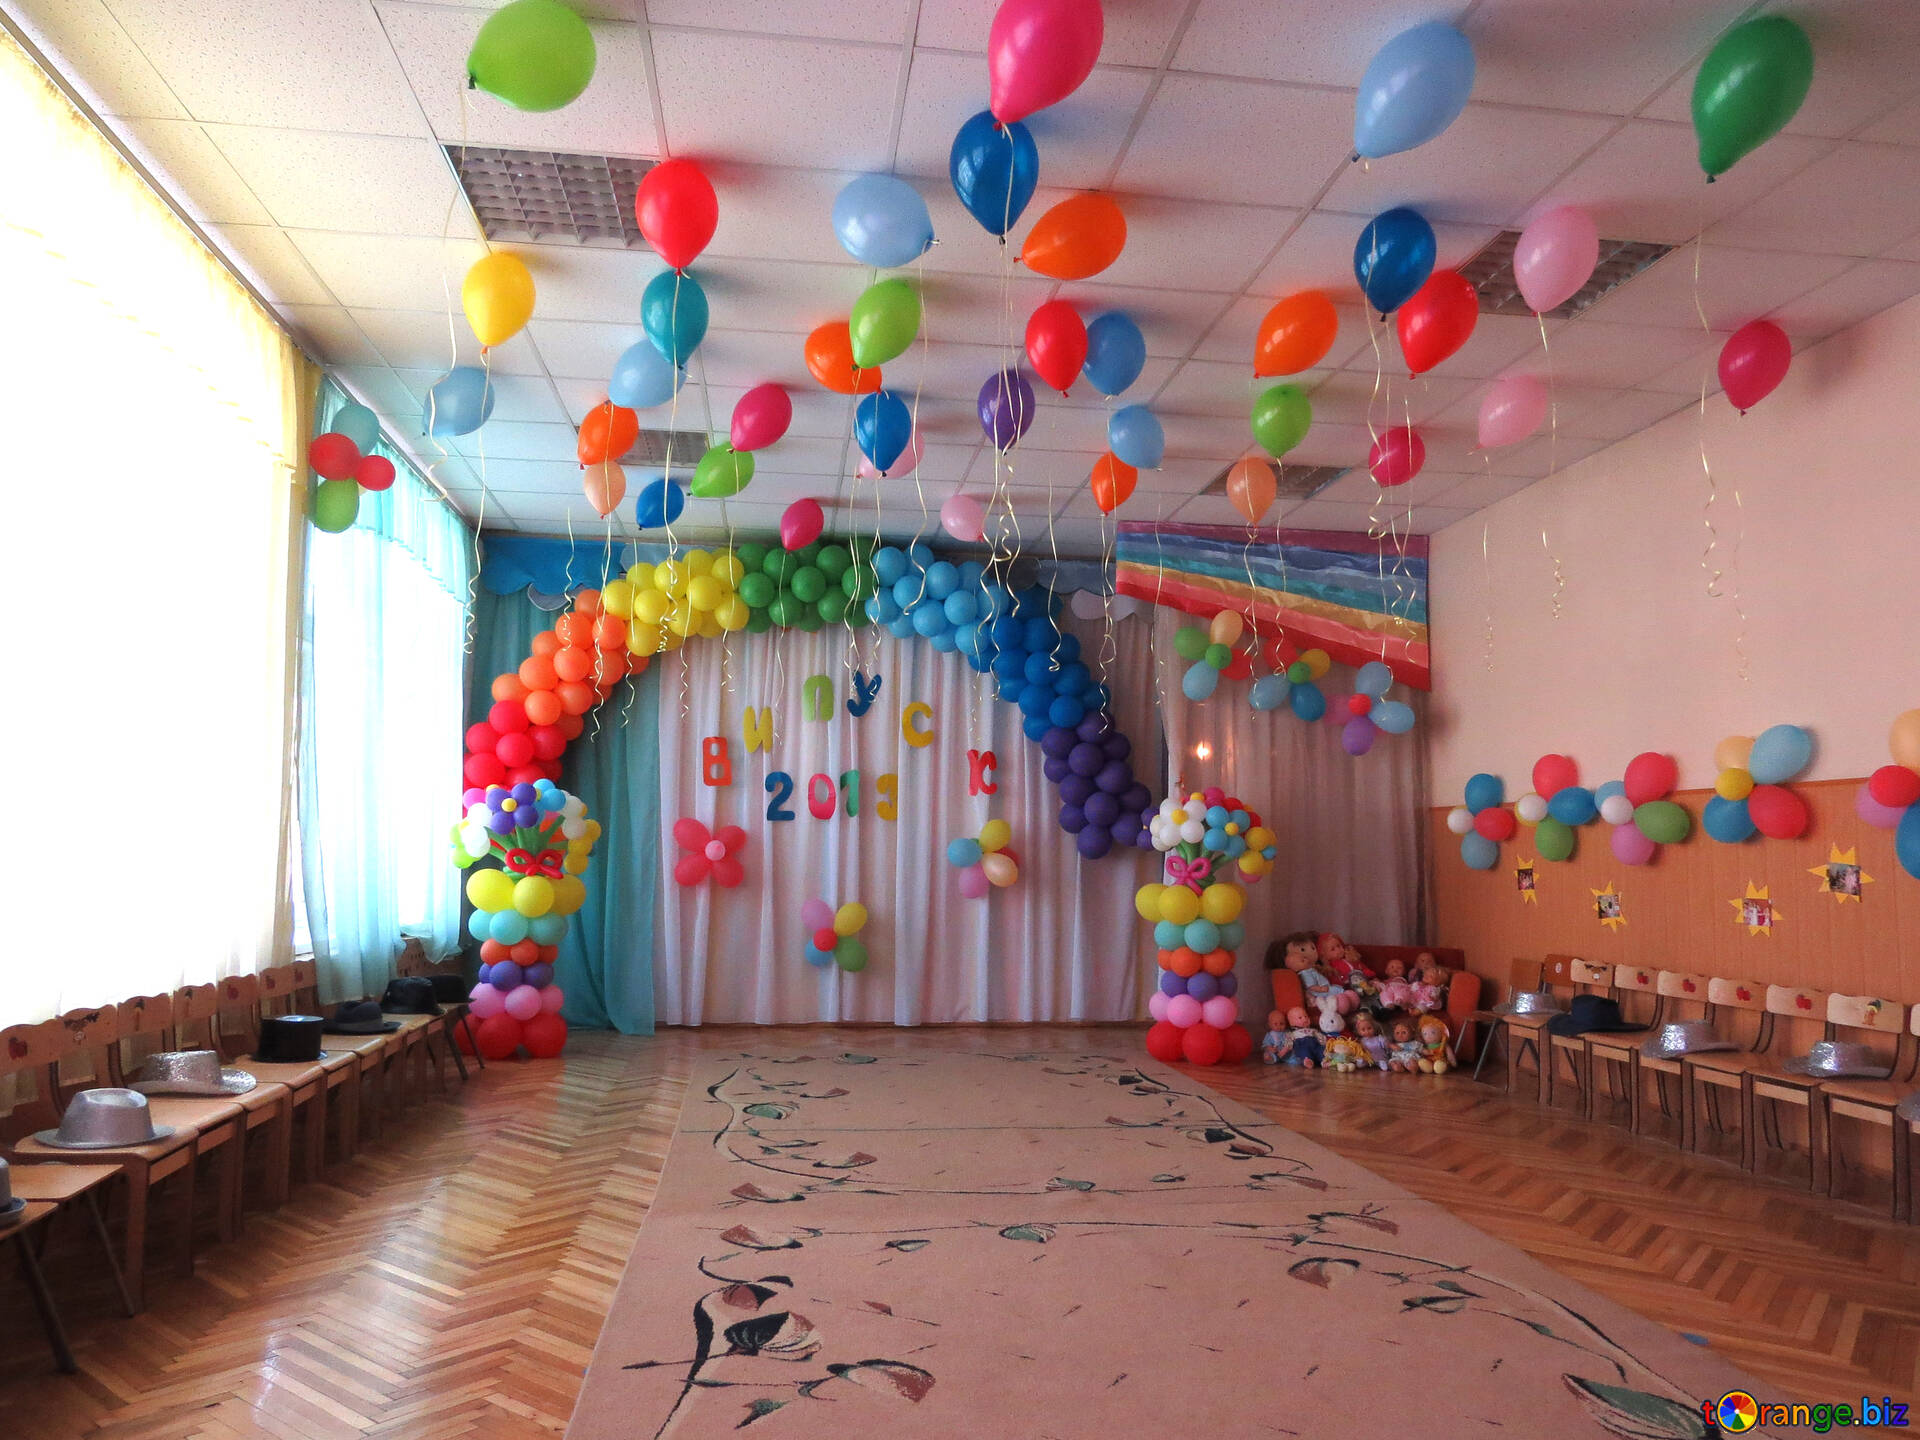 Download Free Image Room Decoration Balloons In HD Wallpaper Size 1920px